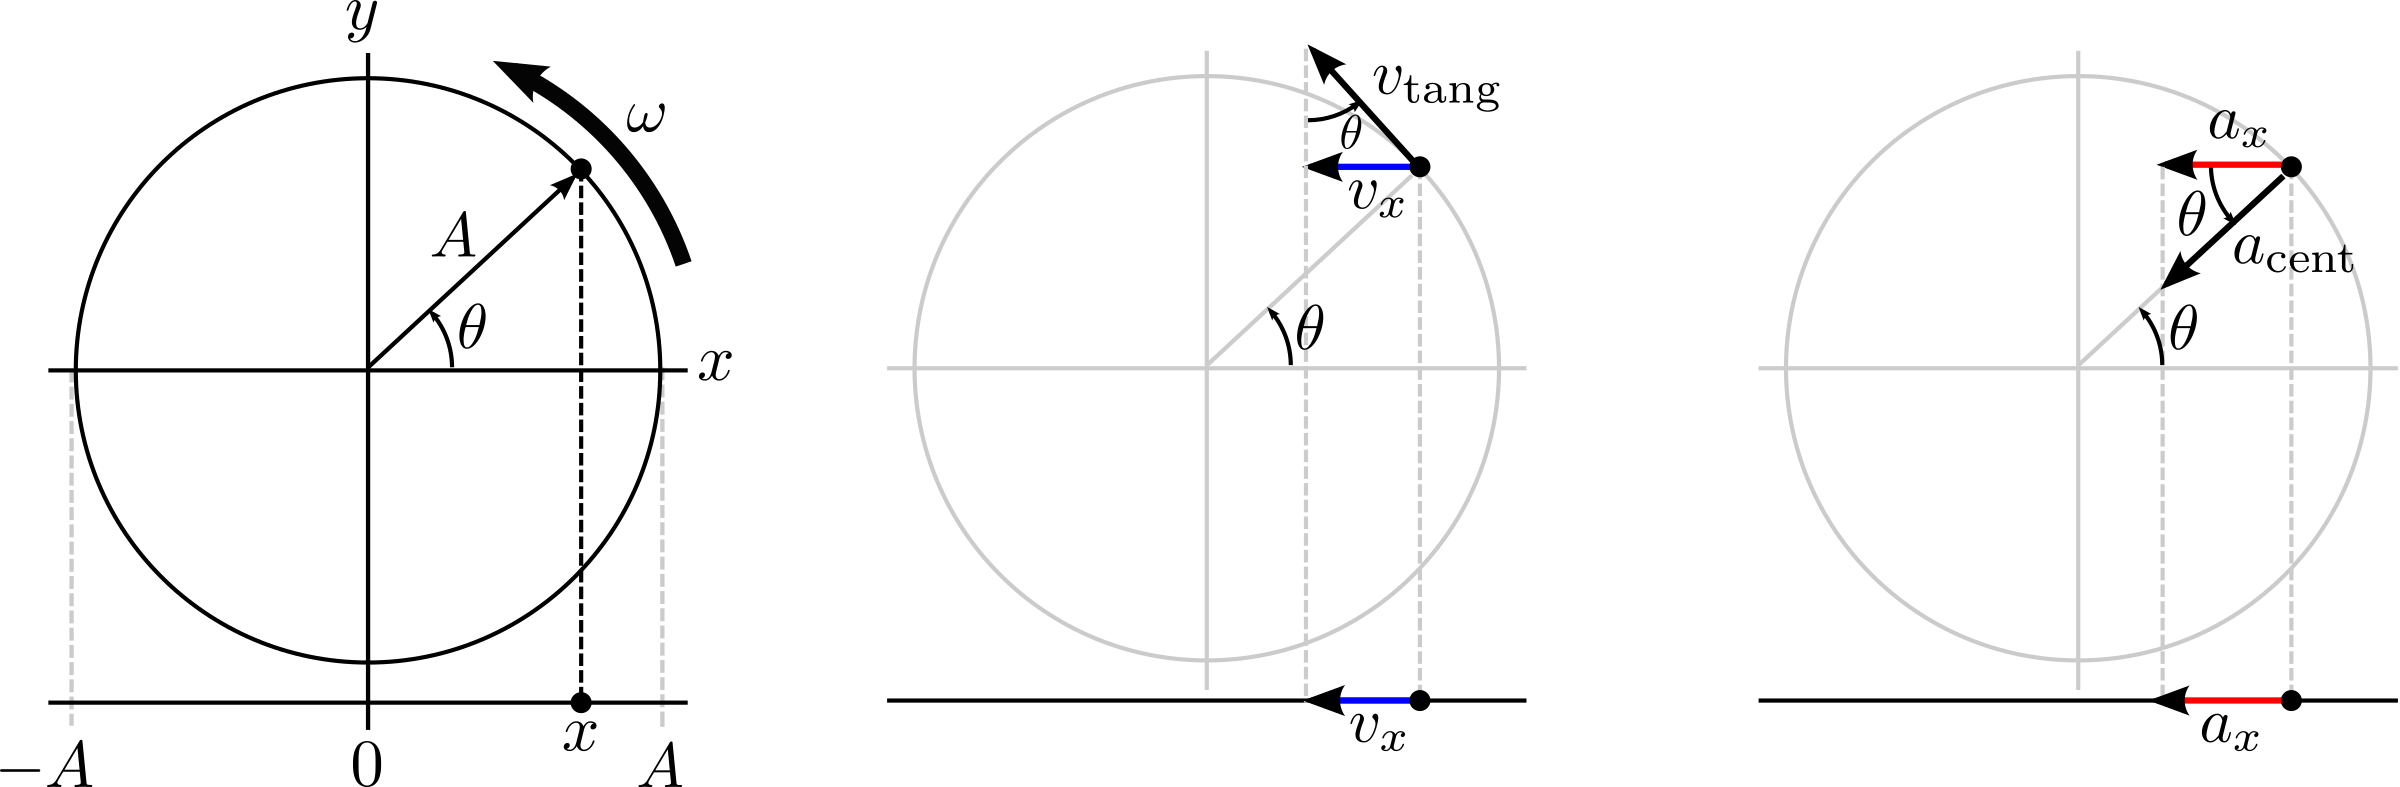 shm projection of circular motion by cbeau